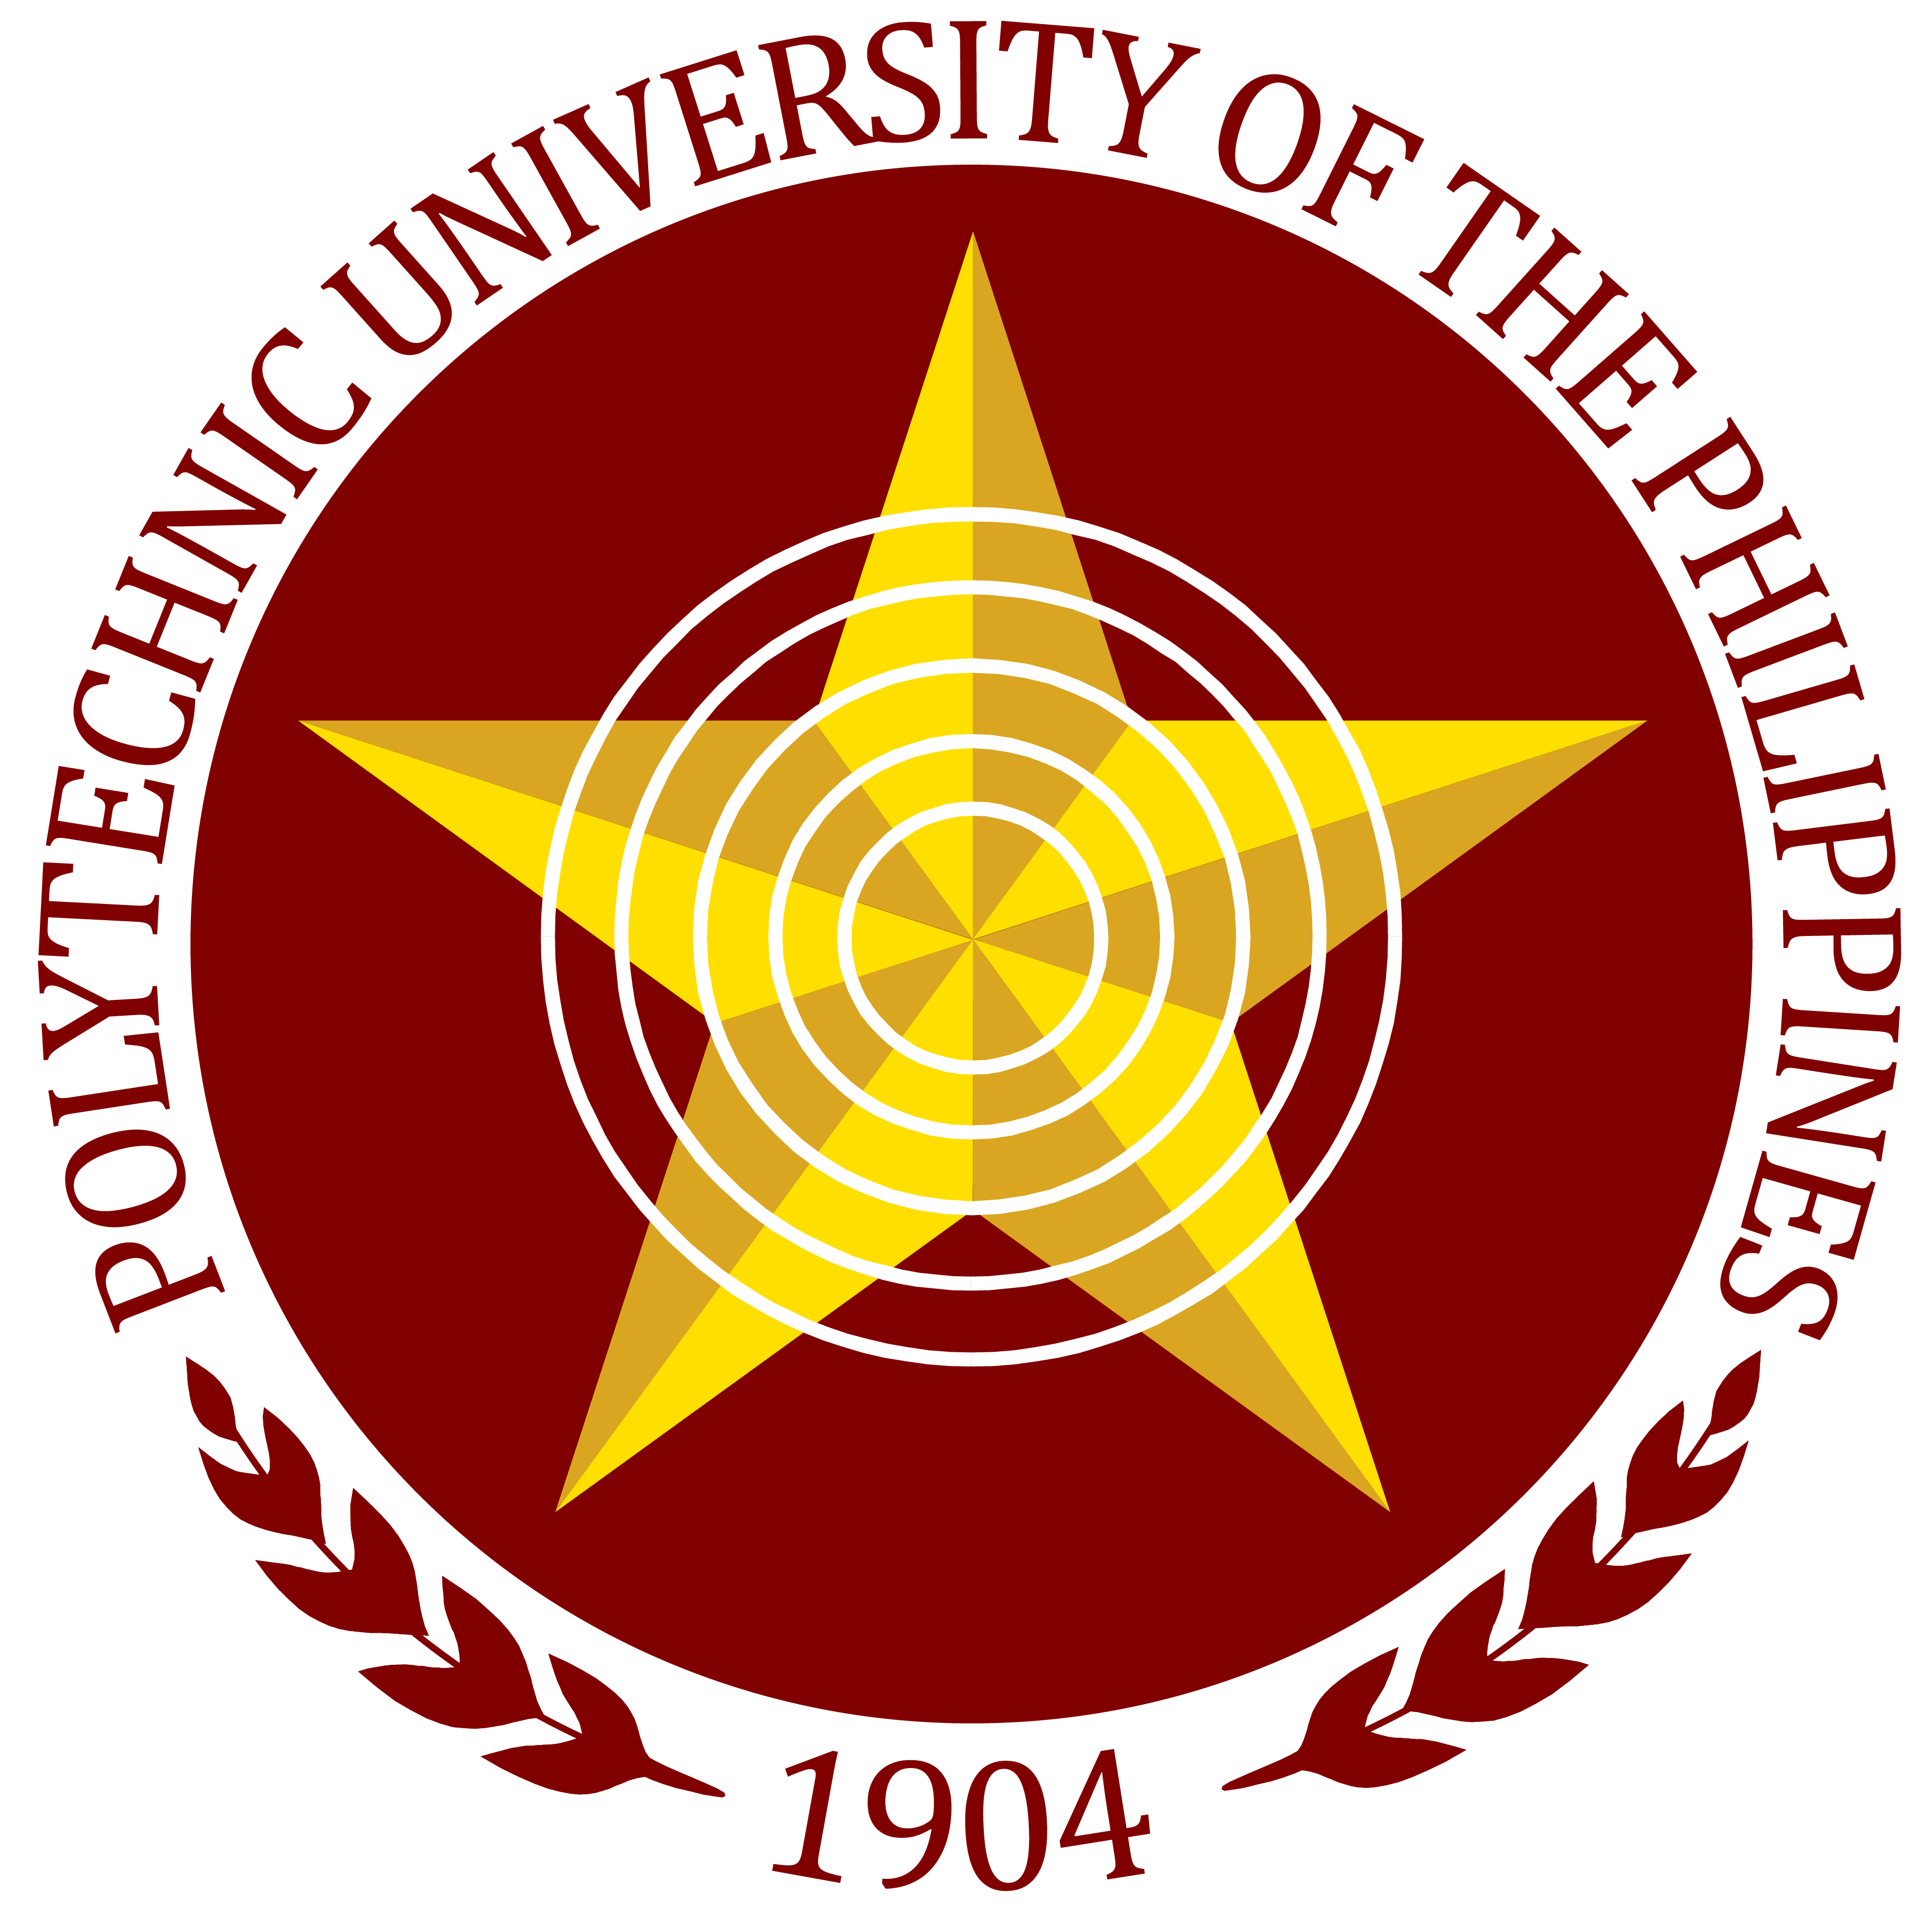 pup logo Polytechnic University of the Philippines